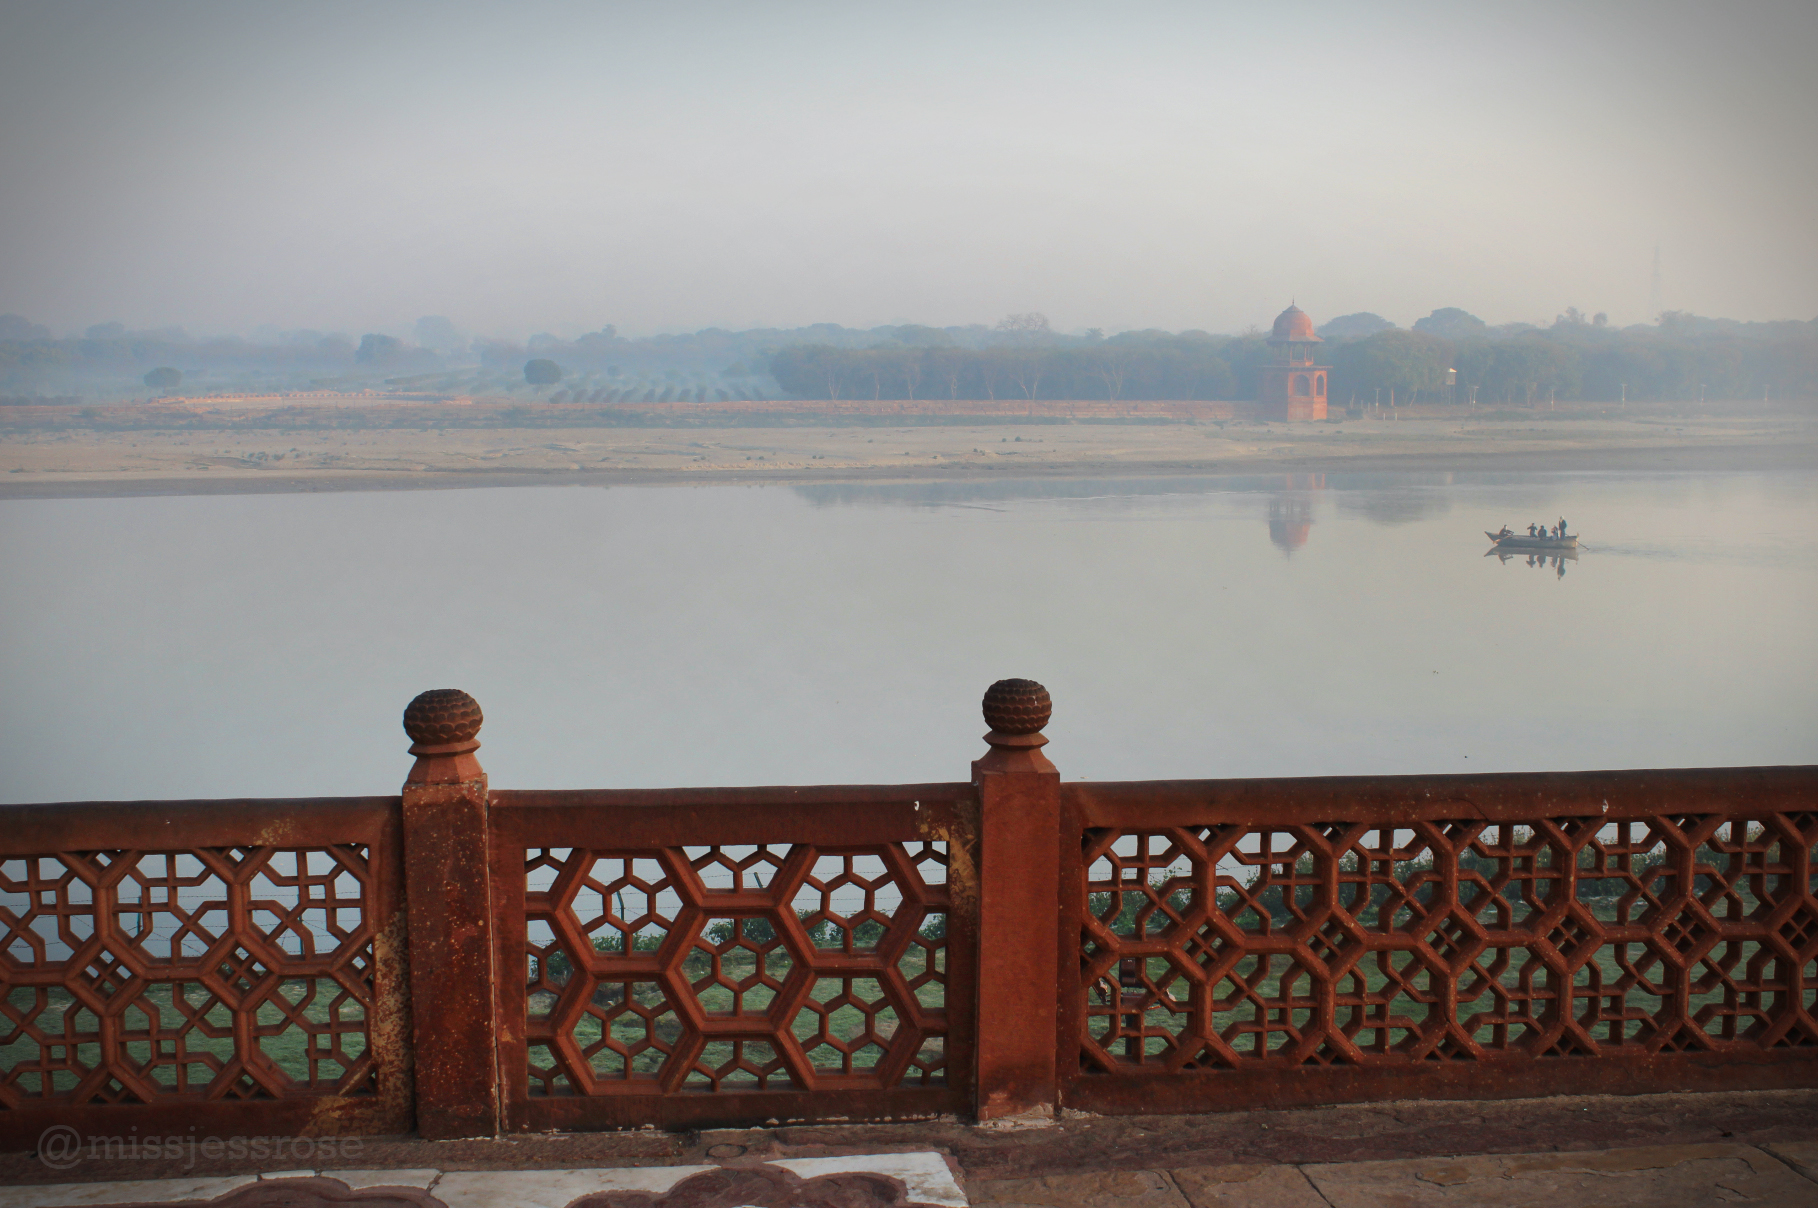 View of the polluted Yamuna river from the Taj Mahal